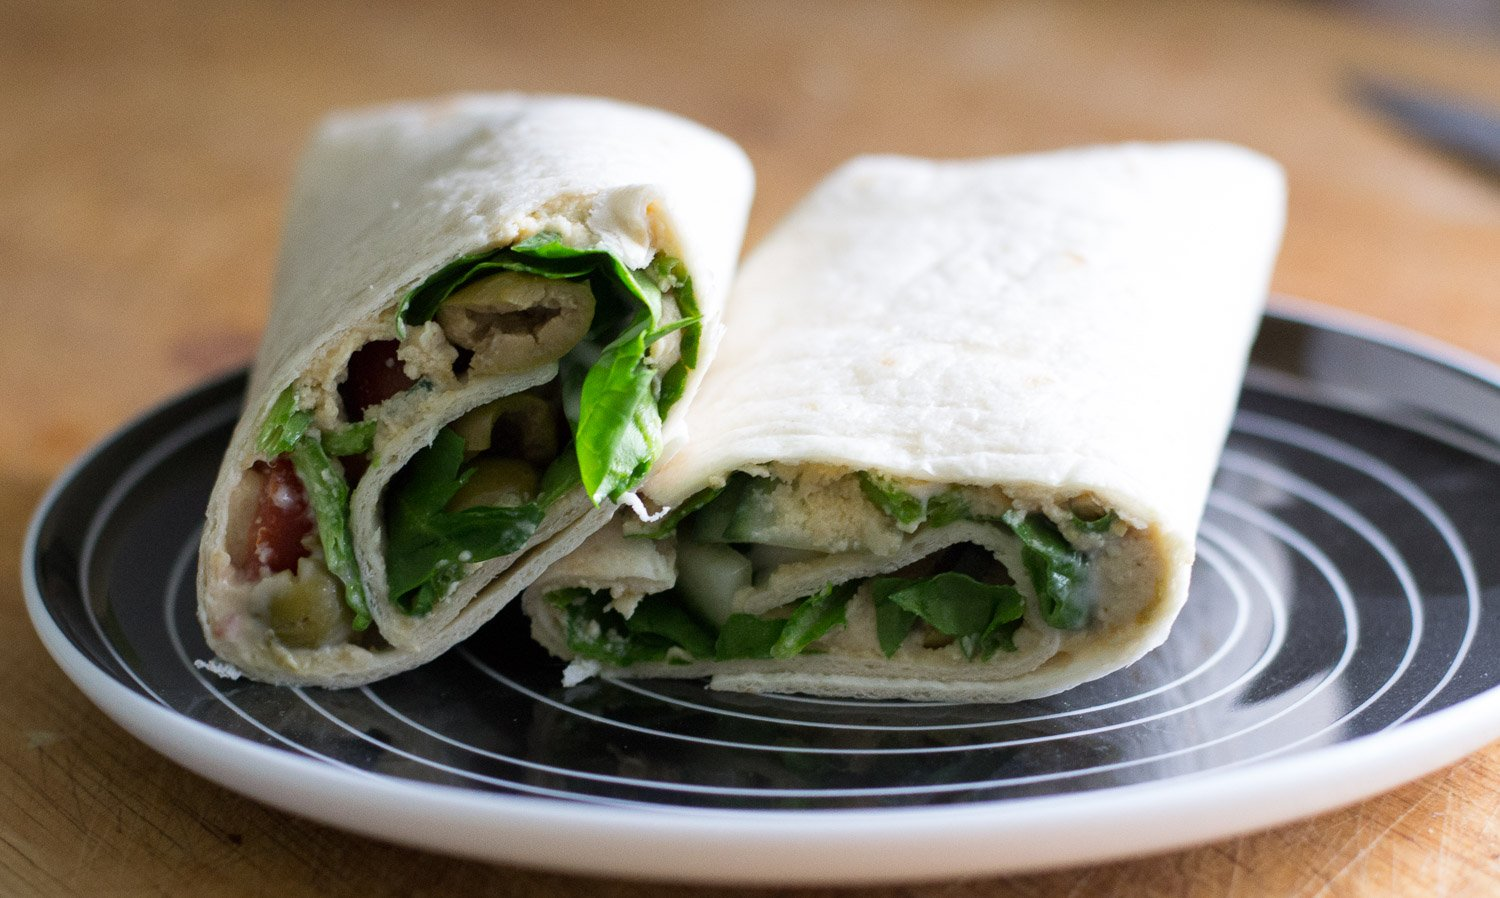 Vegan salad wrap